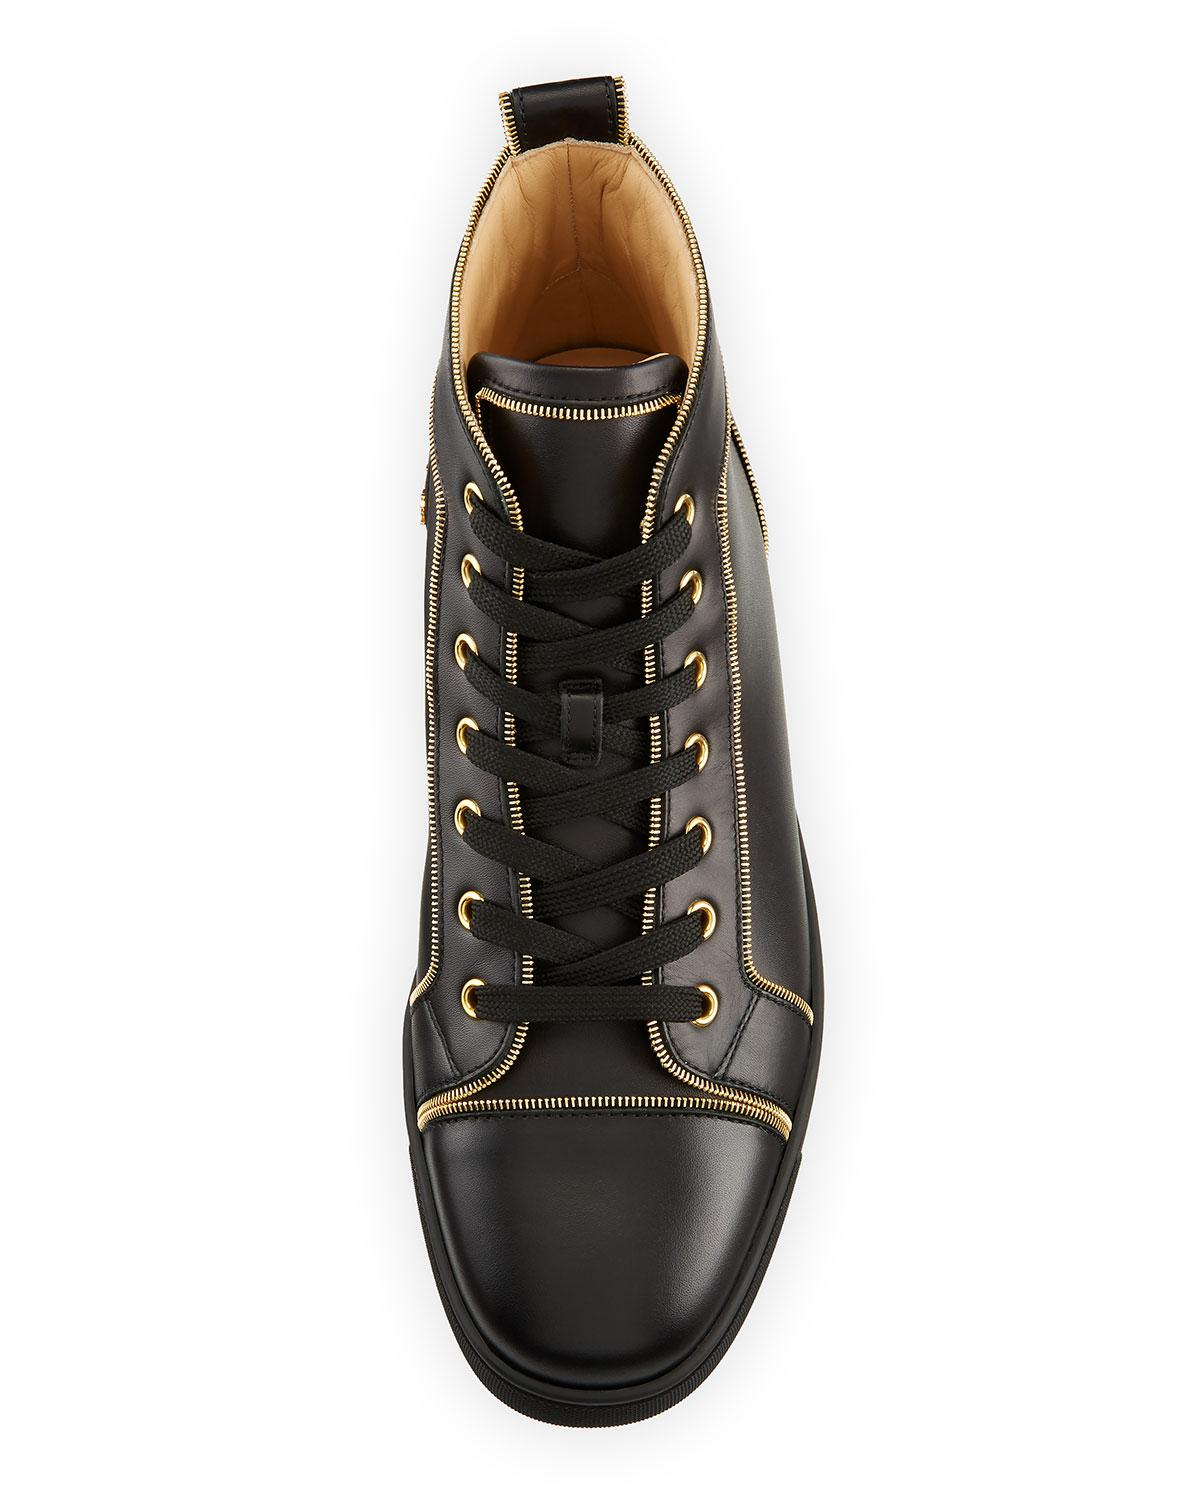 13940cc4e6cf Lyst - Christian Louboutin Louis Z Men s Zip-trim Leather High-top Sneakers  in Black for Men